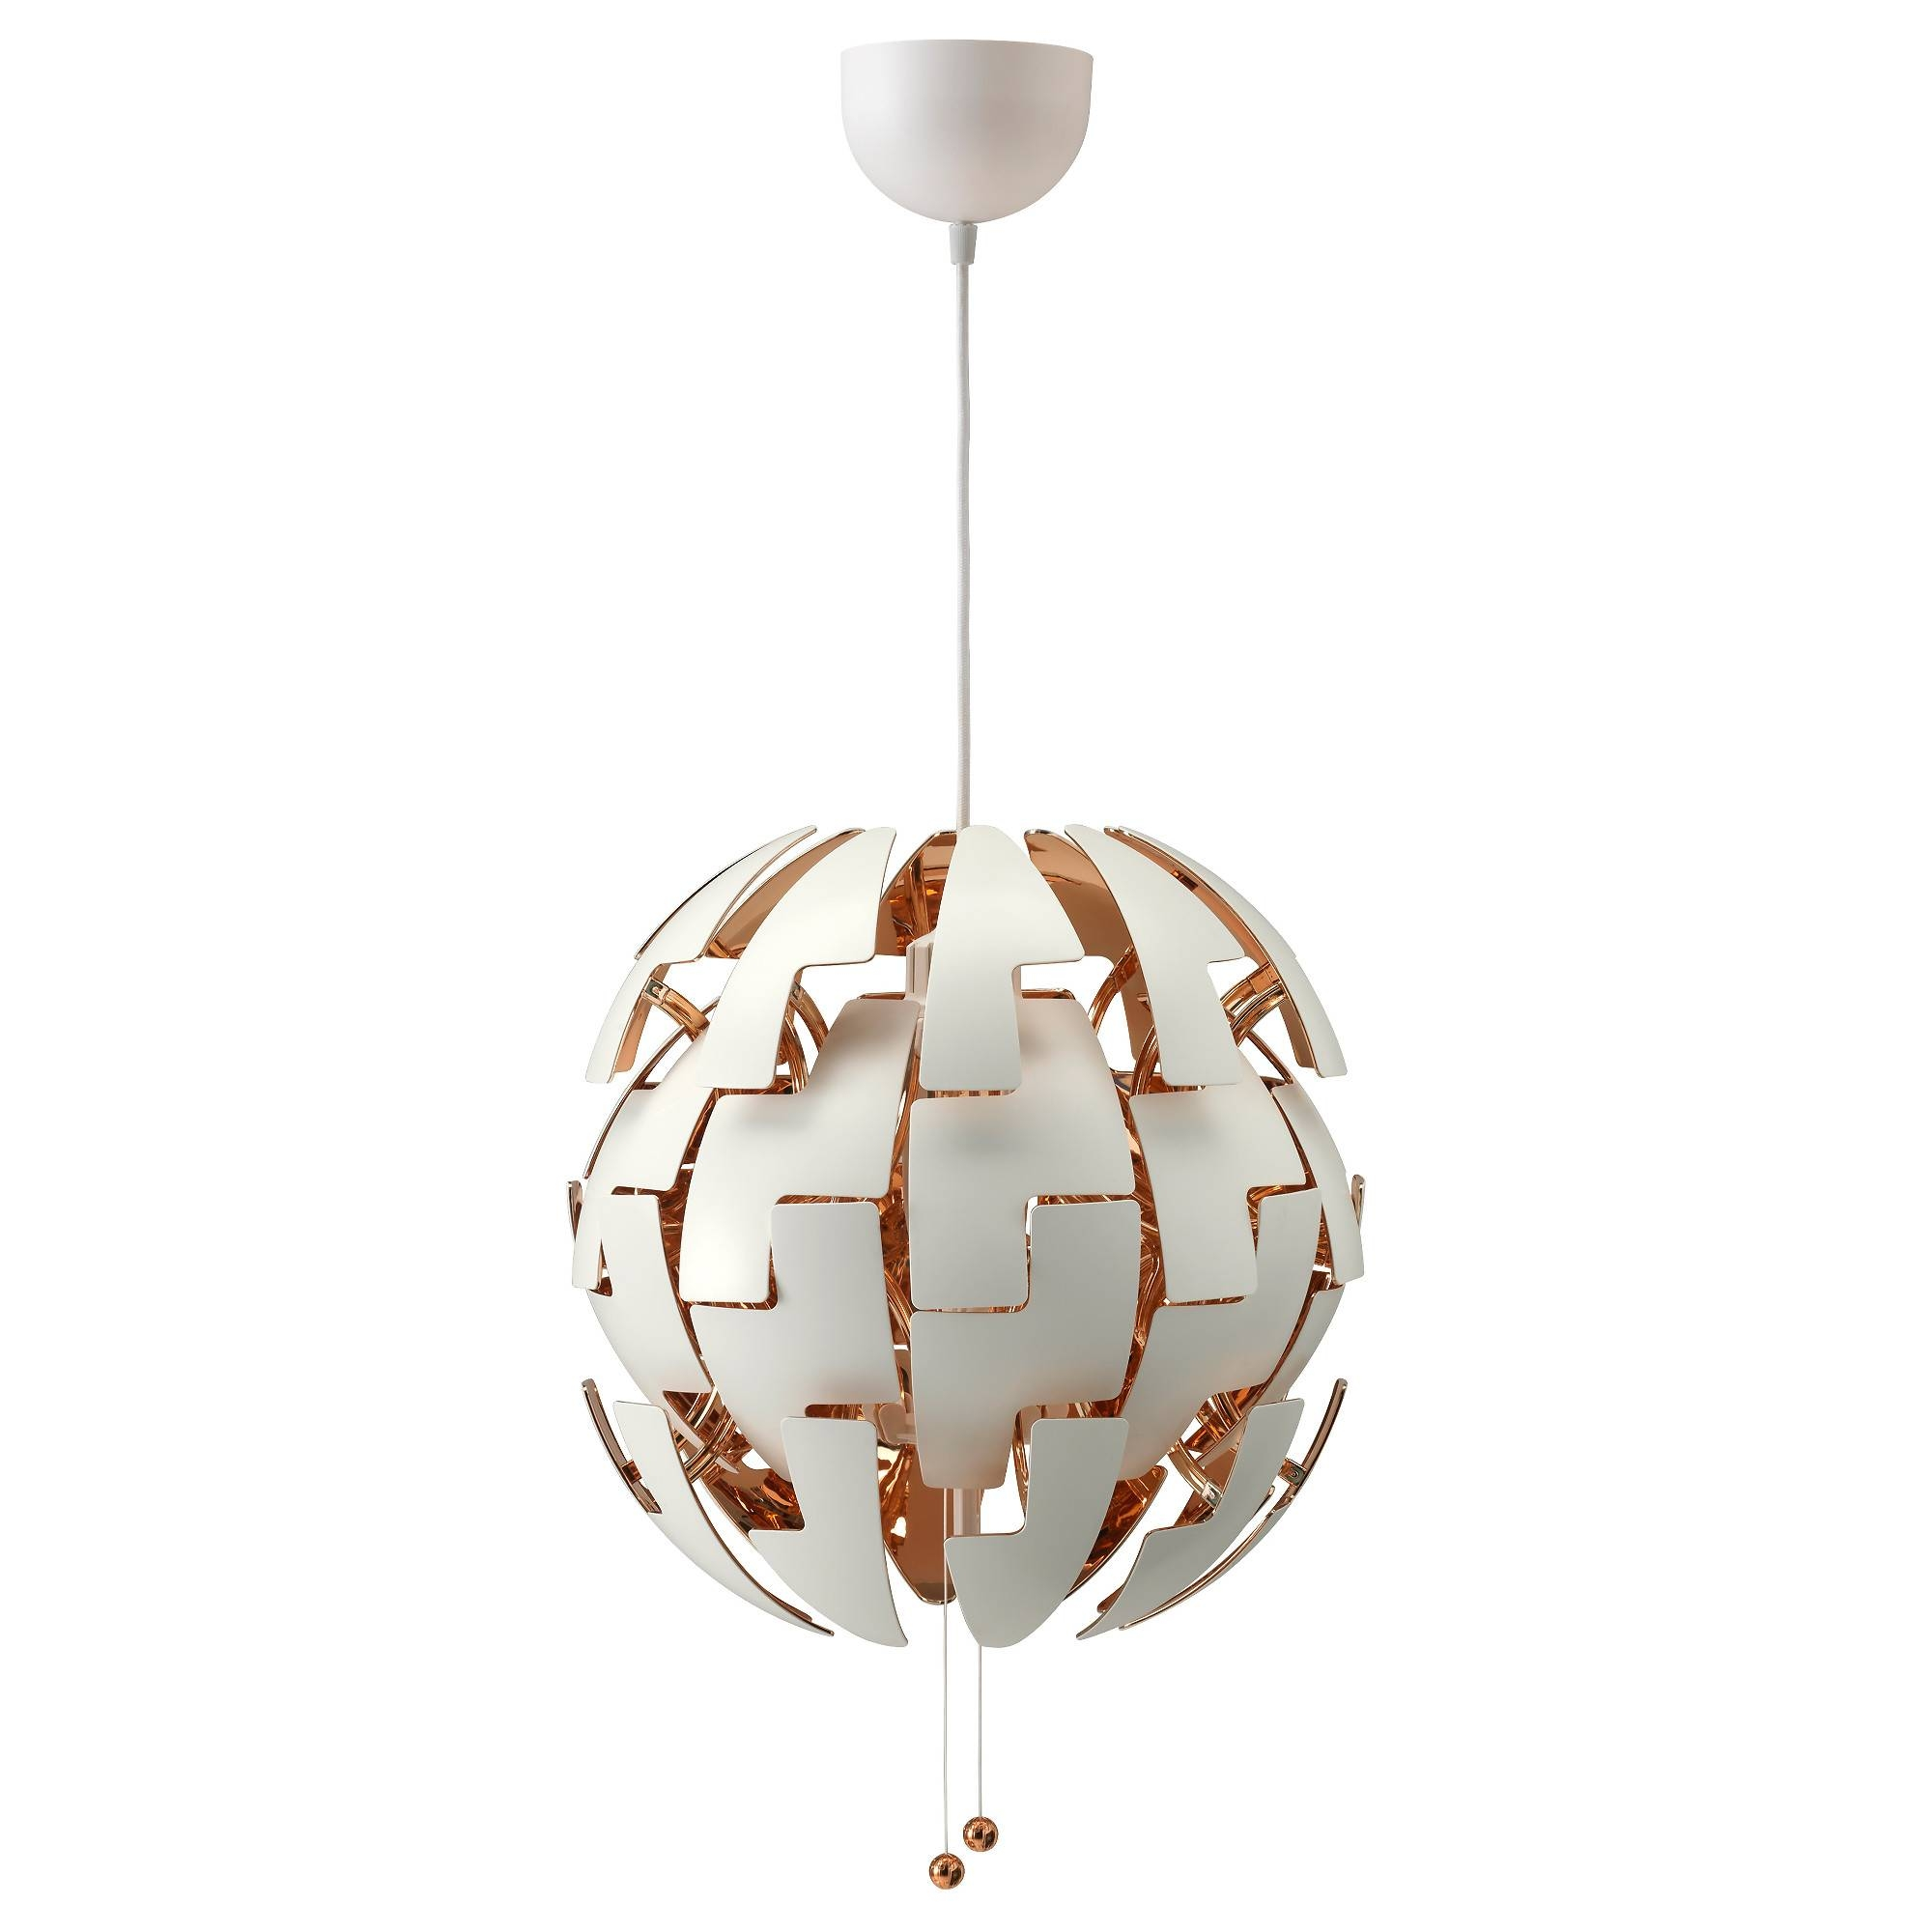 Ikea Ps 2014 Pendant Lamp - White/silver Color - Ikea intended for Ikea Ceiling Lights Fittings (Image 8 of 15)